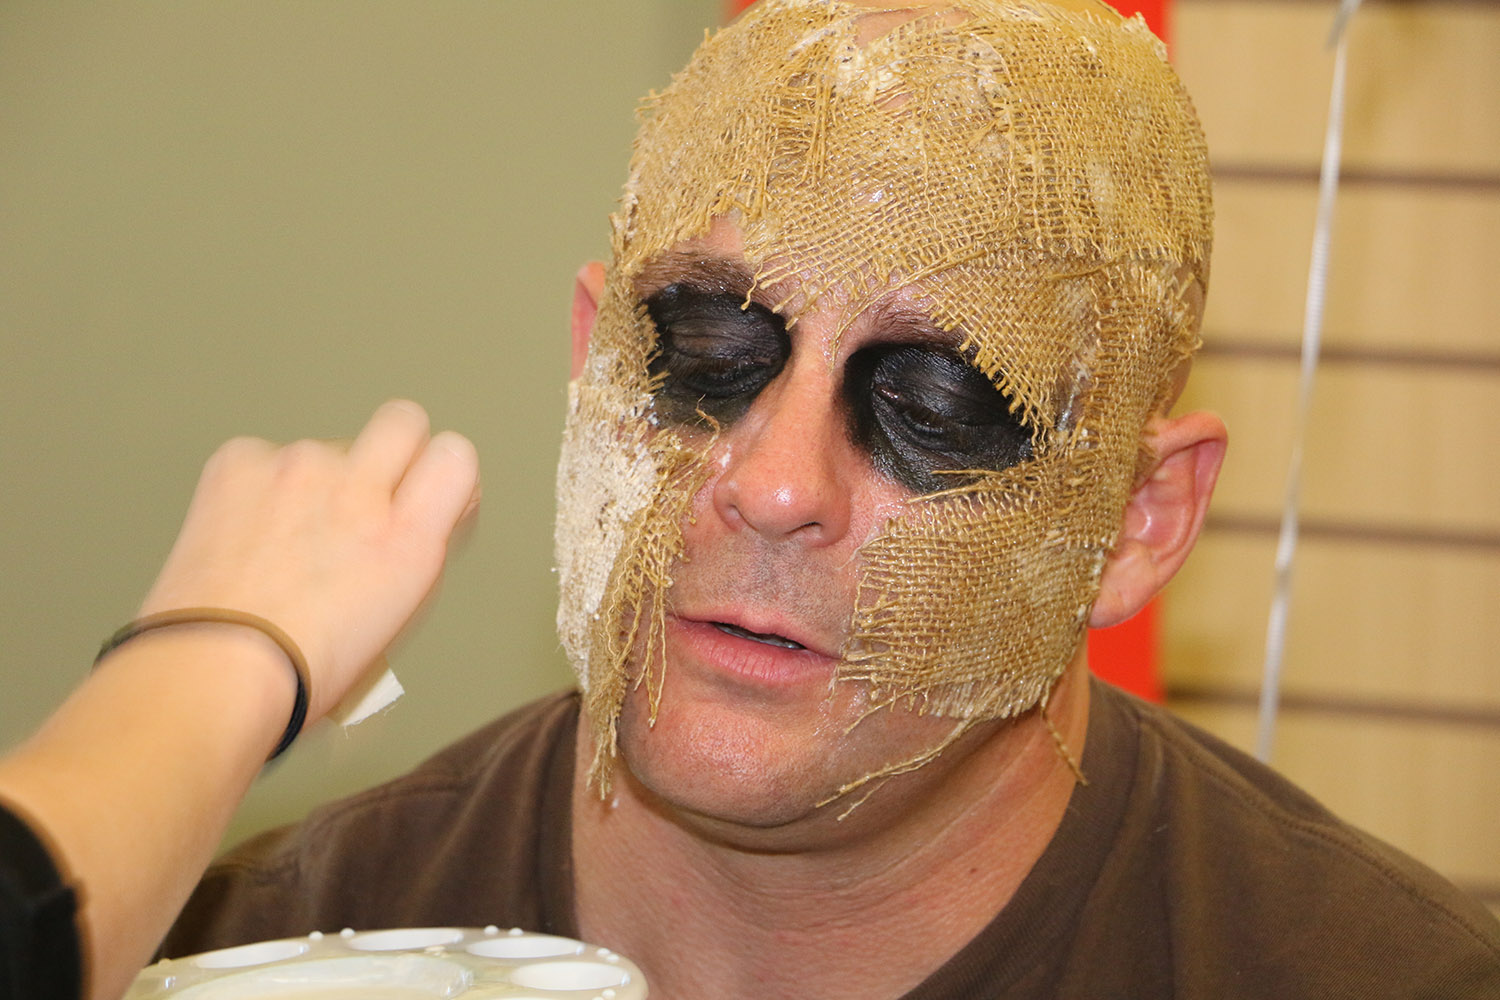 Makeup artist applying mask to mans face